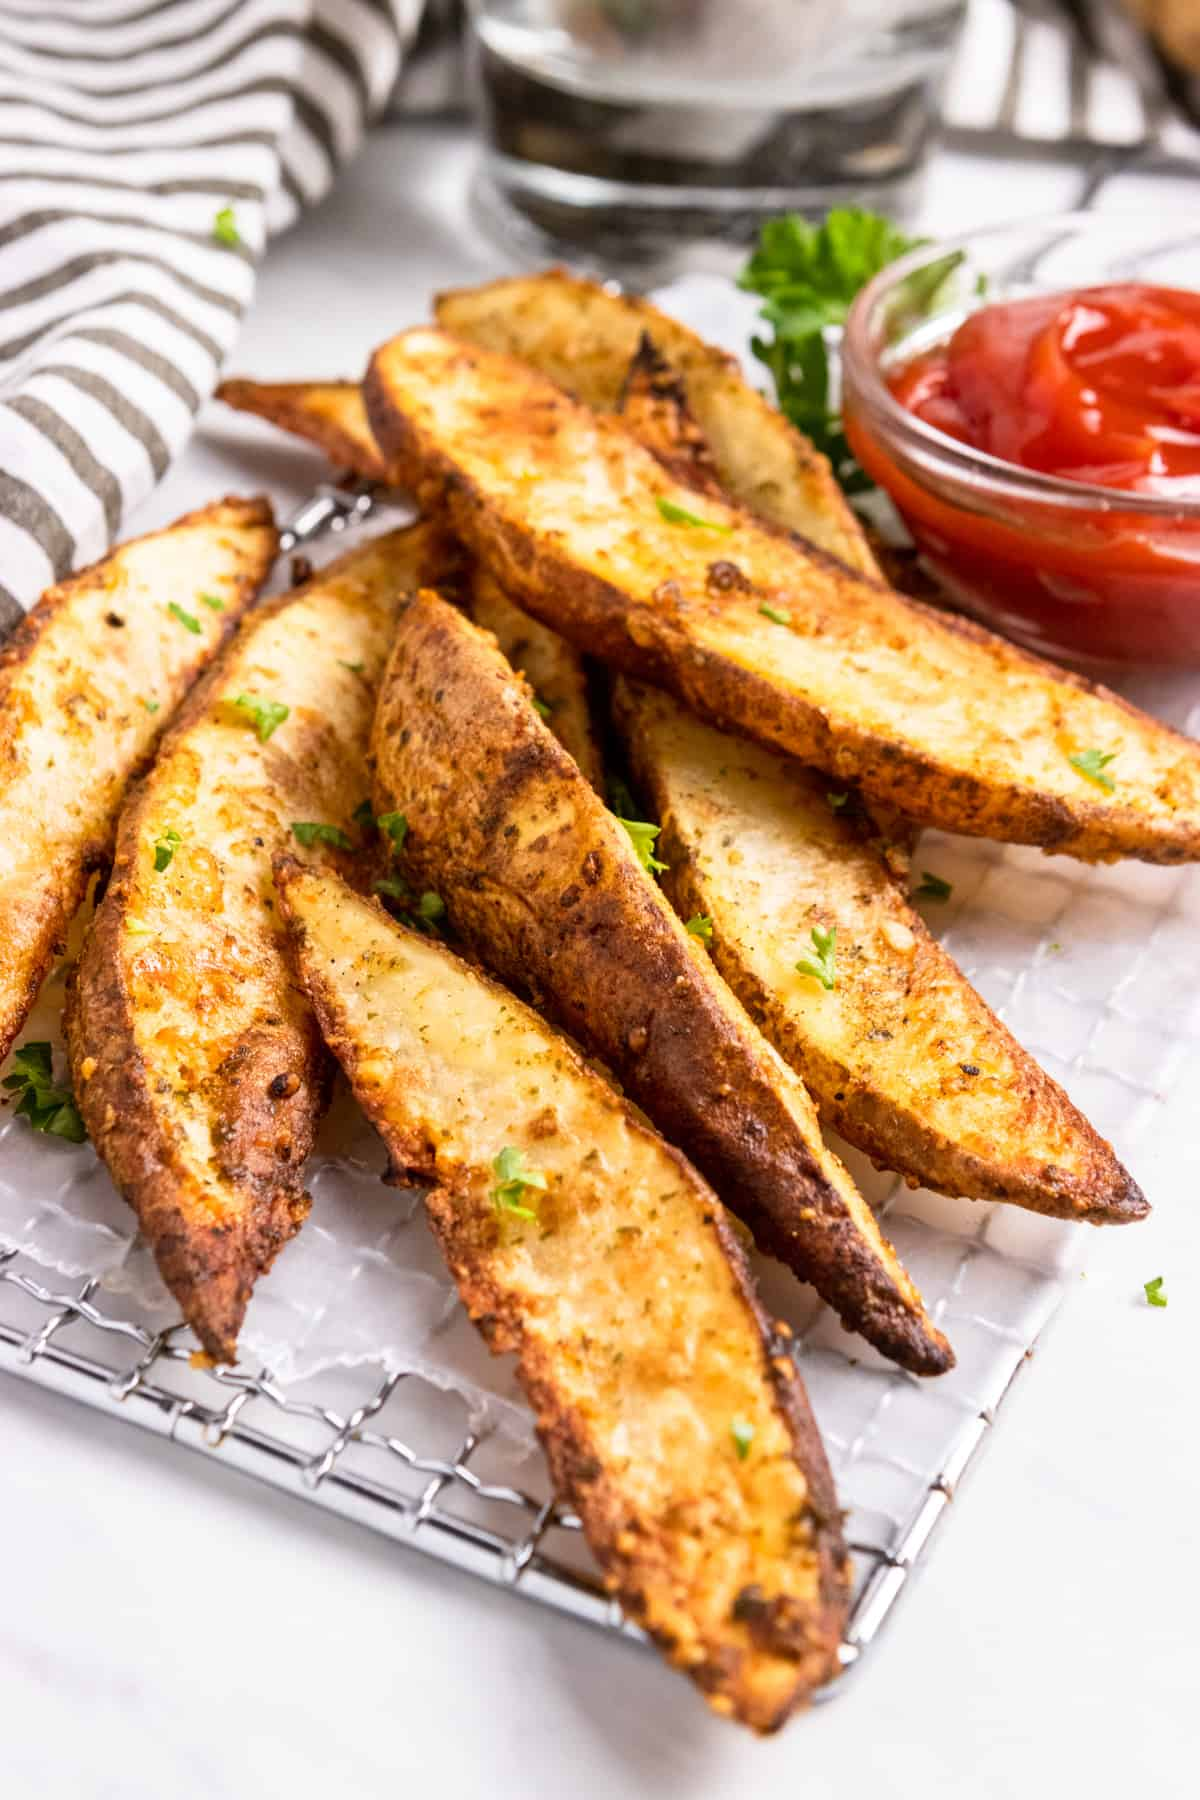 air fryer potato wedges on wax paper with ketchup.